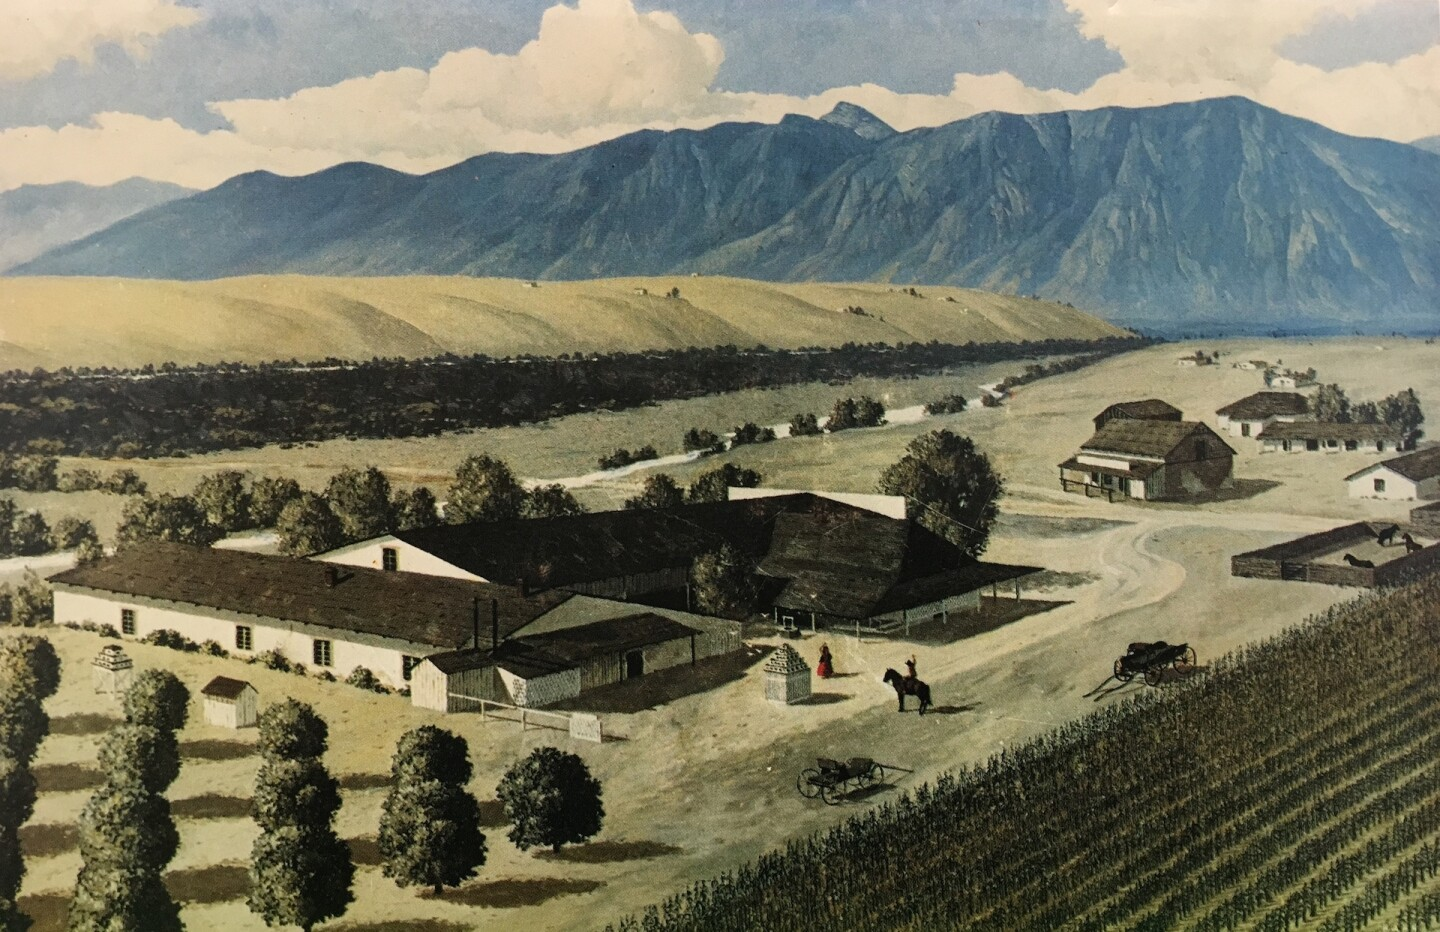 """Oil painting of Pico's """"El Ranchito in the 1880s,"""" painted by artist Herbert Hahn in the 1960s"""